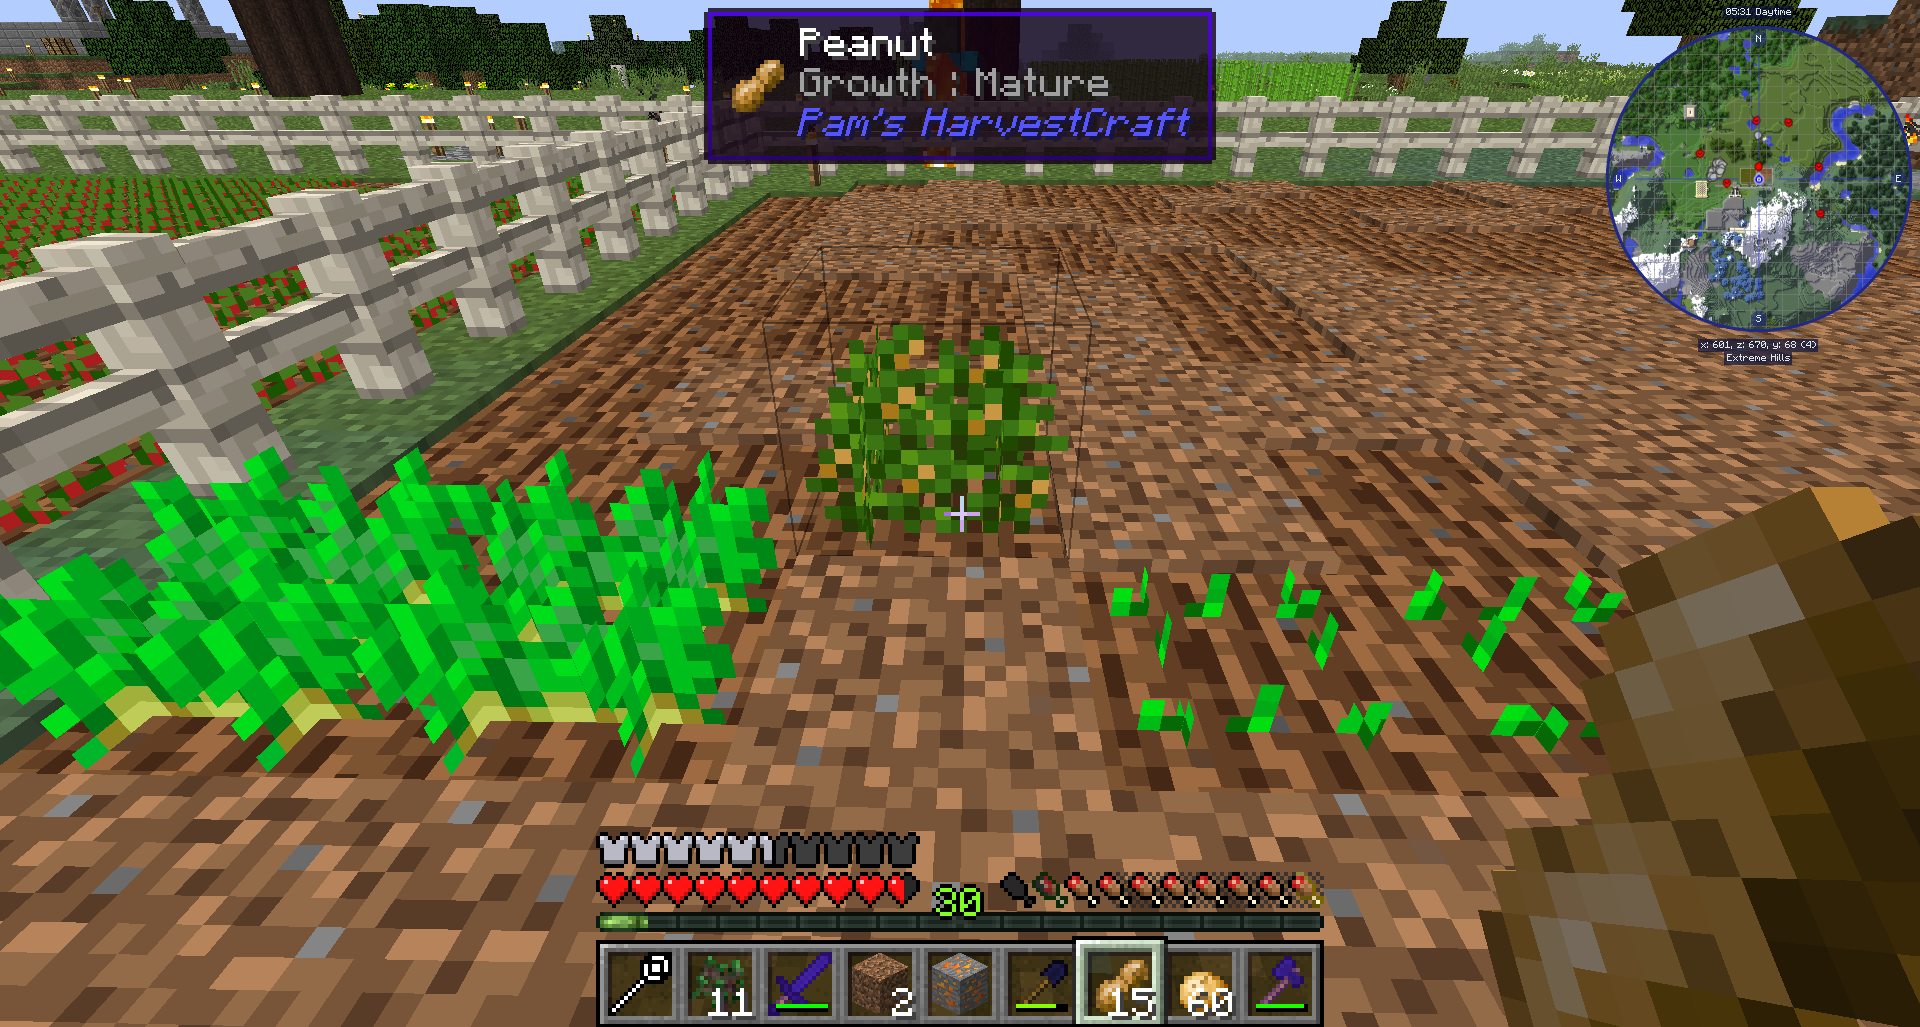 Plant Sower and Plant Gatherer not working · Issue #356